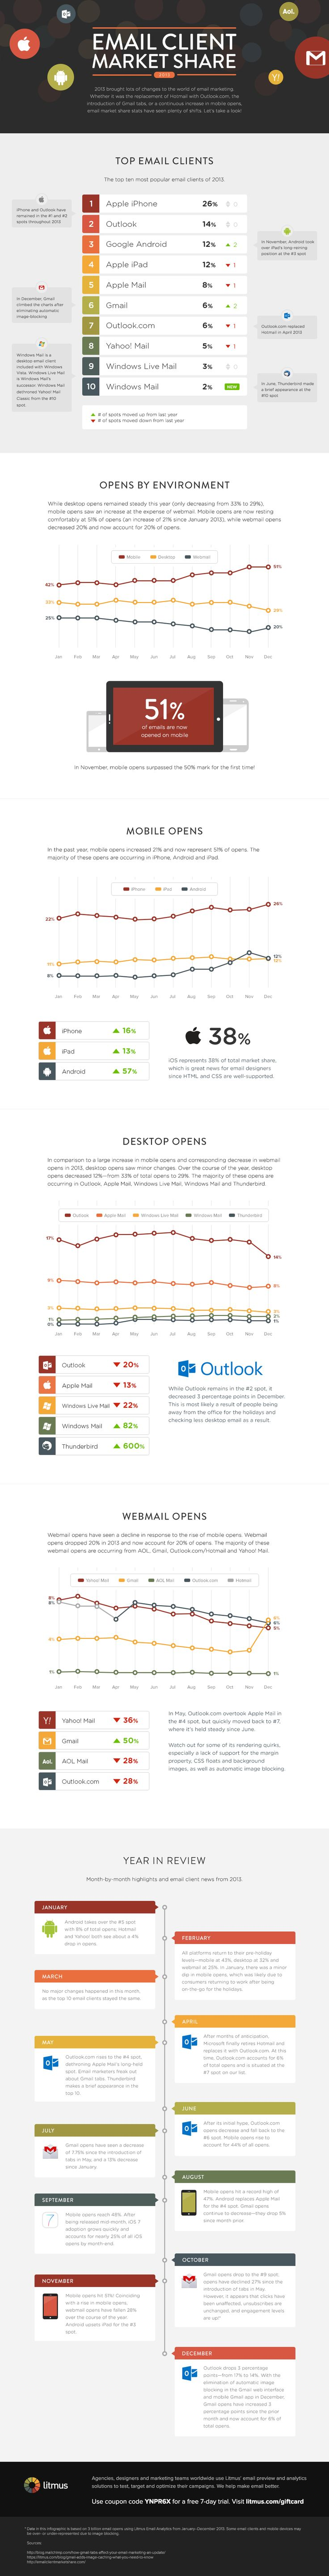 Between the replacement of Hotmail with Outlook.com, major Gmail changes, and a continuous increase in mobile opens, email client market share stats saw quite the shift in 2013. In this infographic, we take a deep dive into these statistics! #emailmarketing